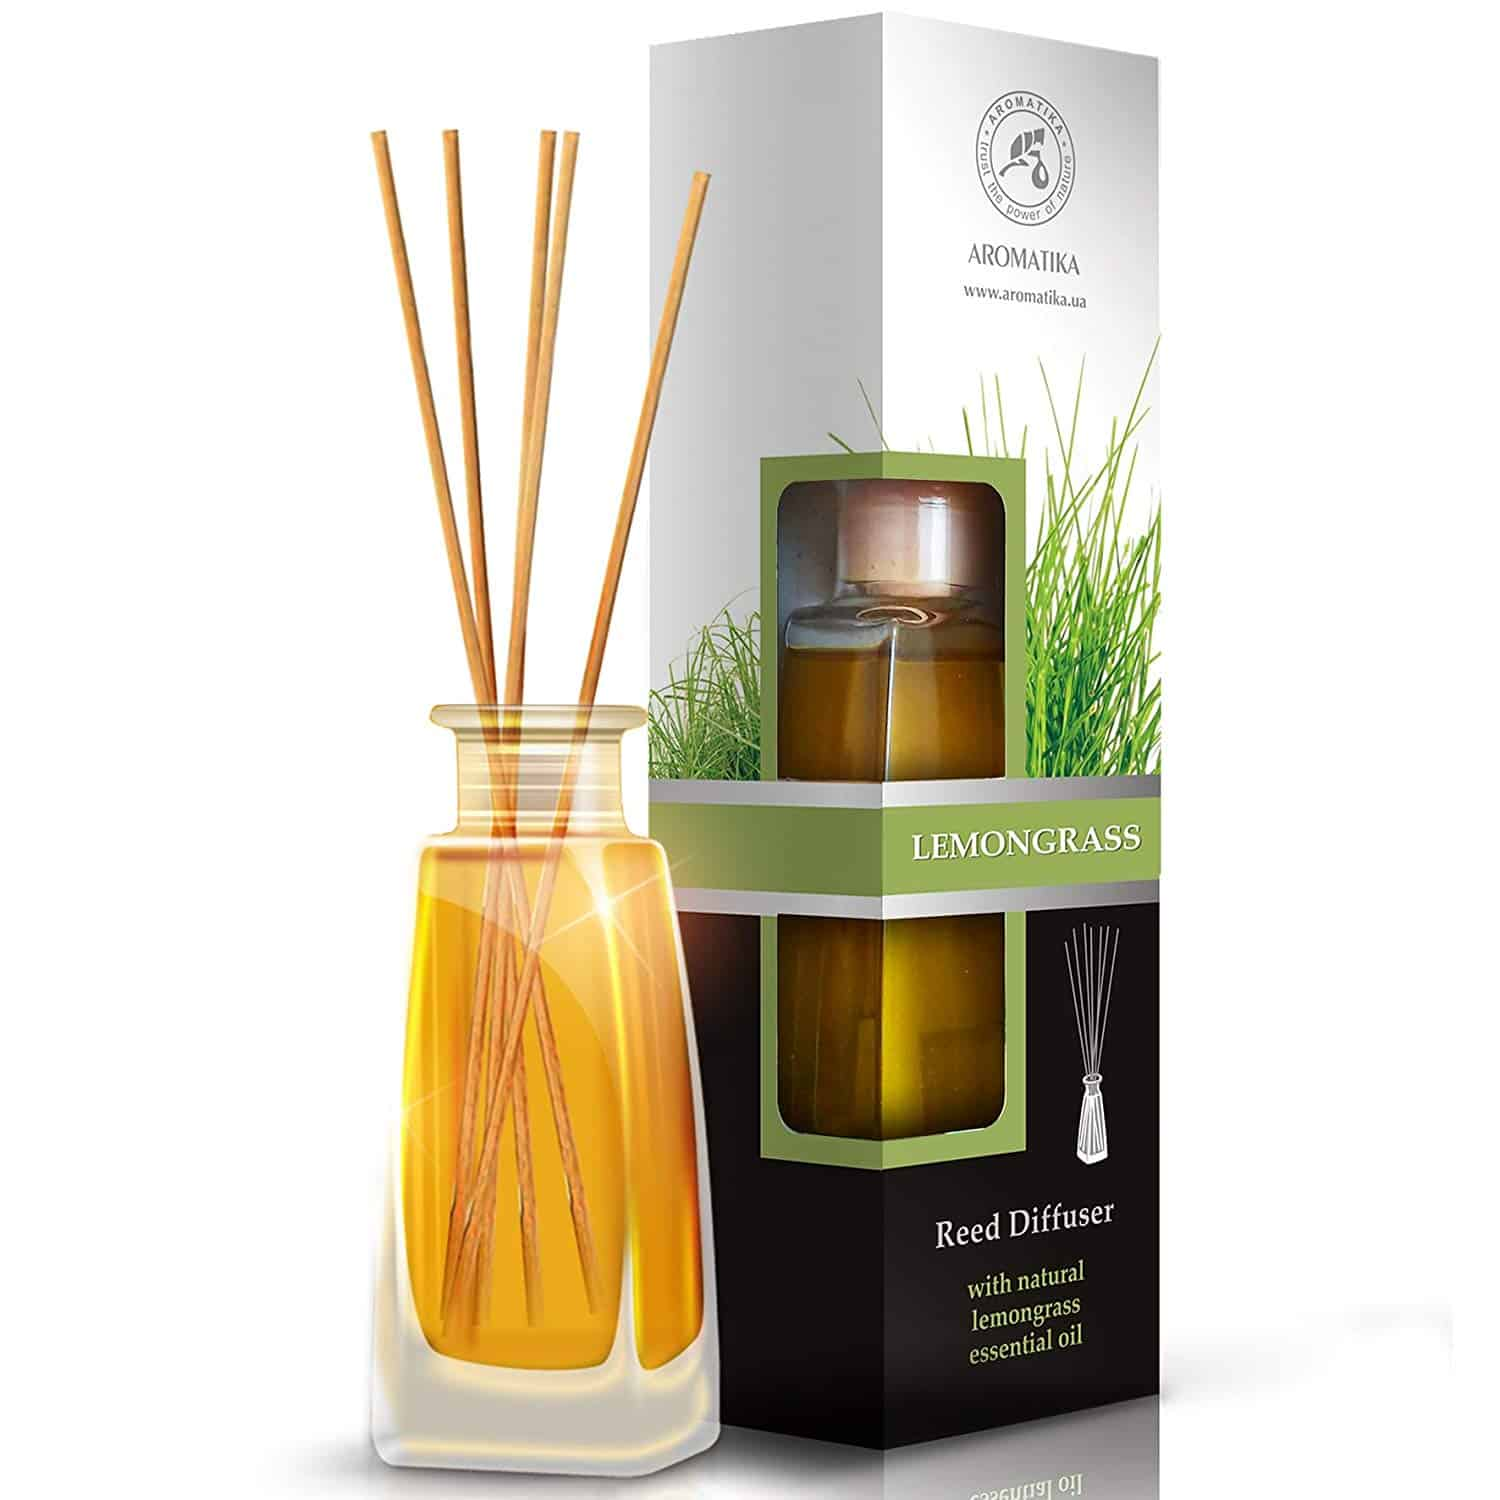 Awesome Aroma diffusers